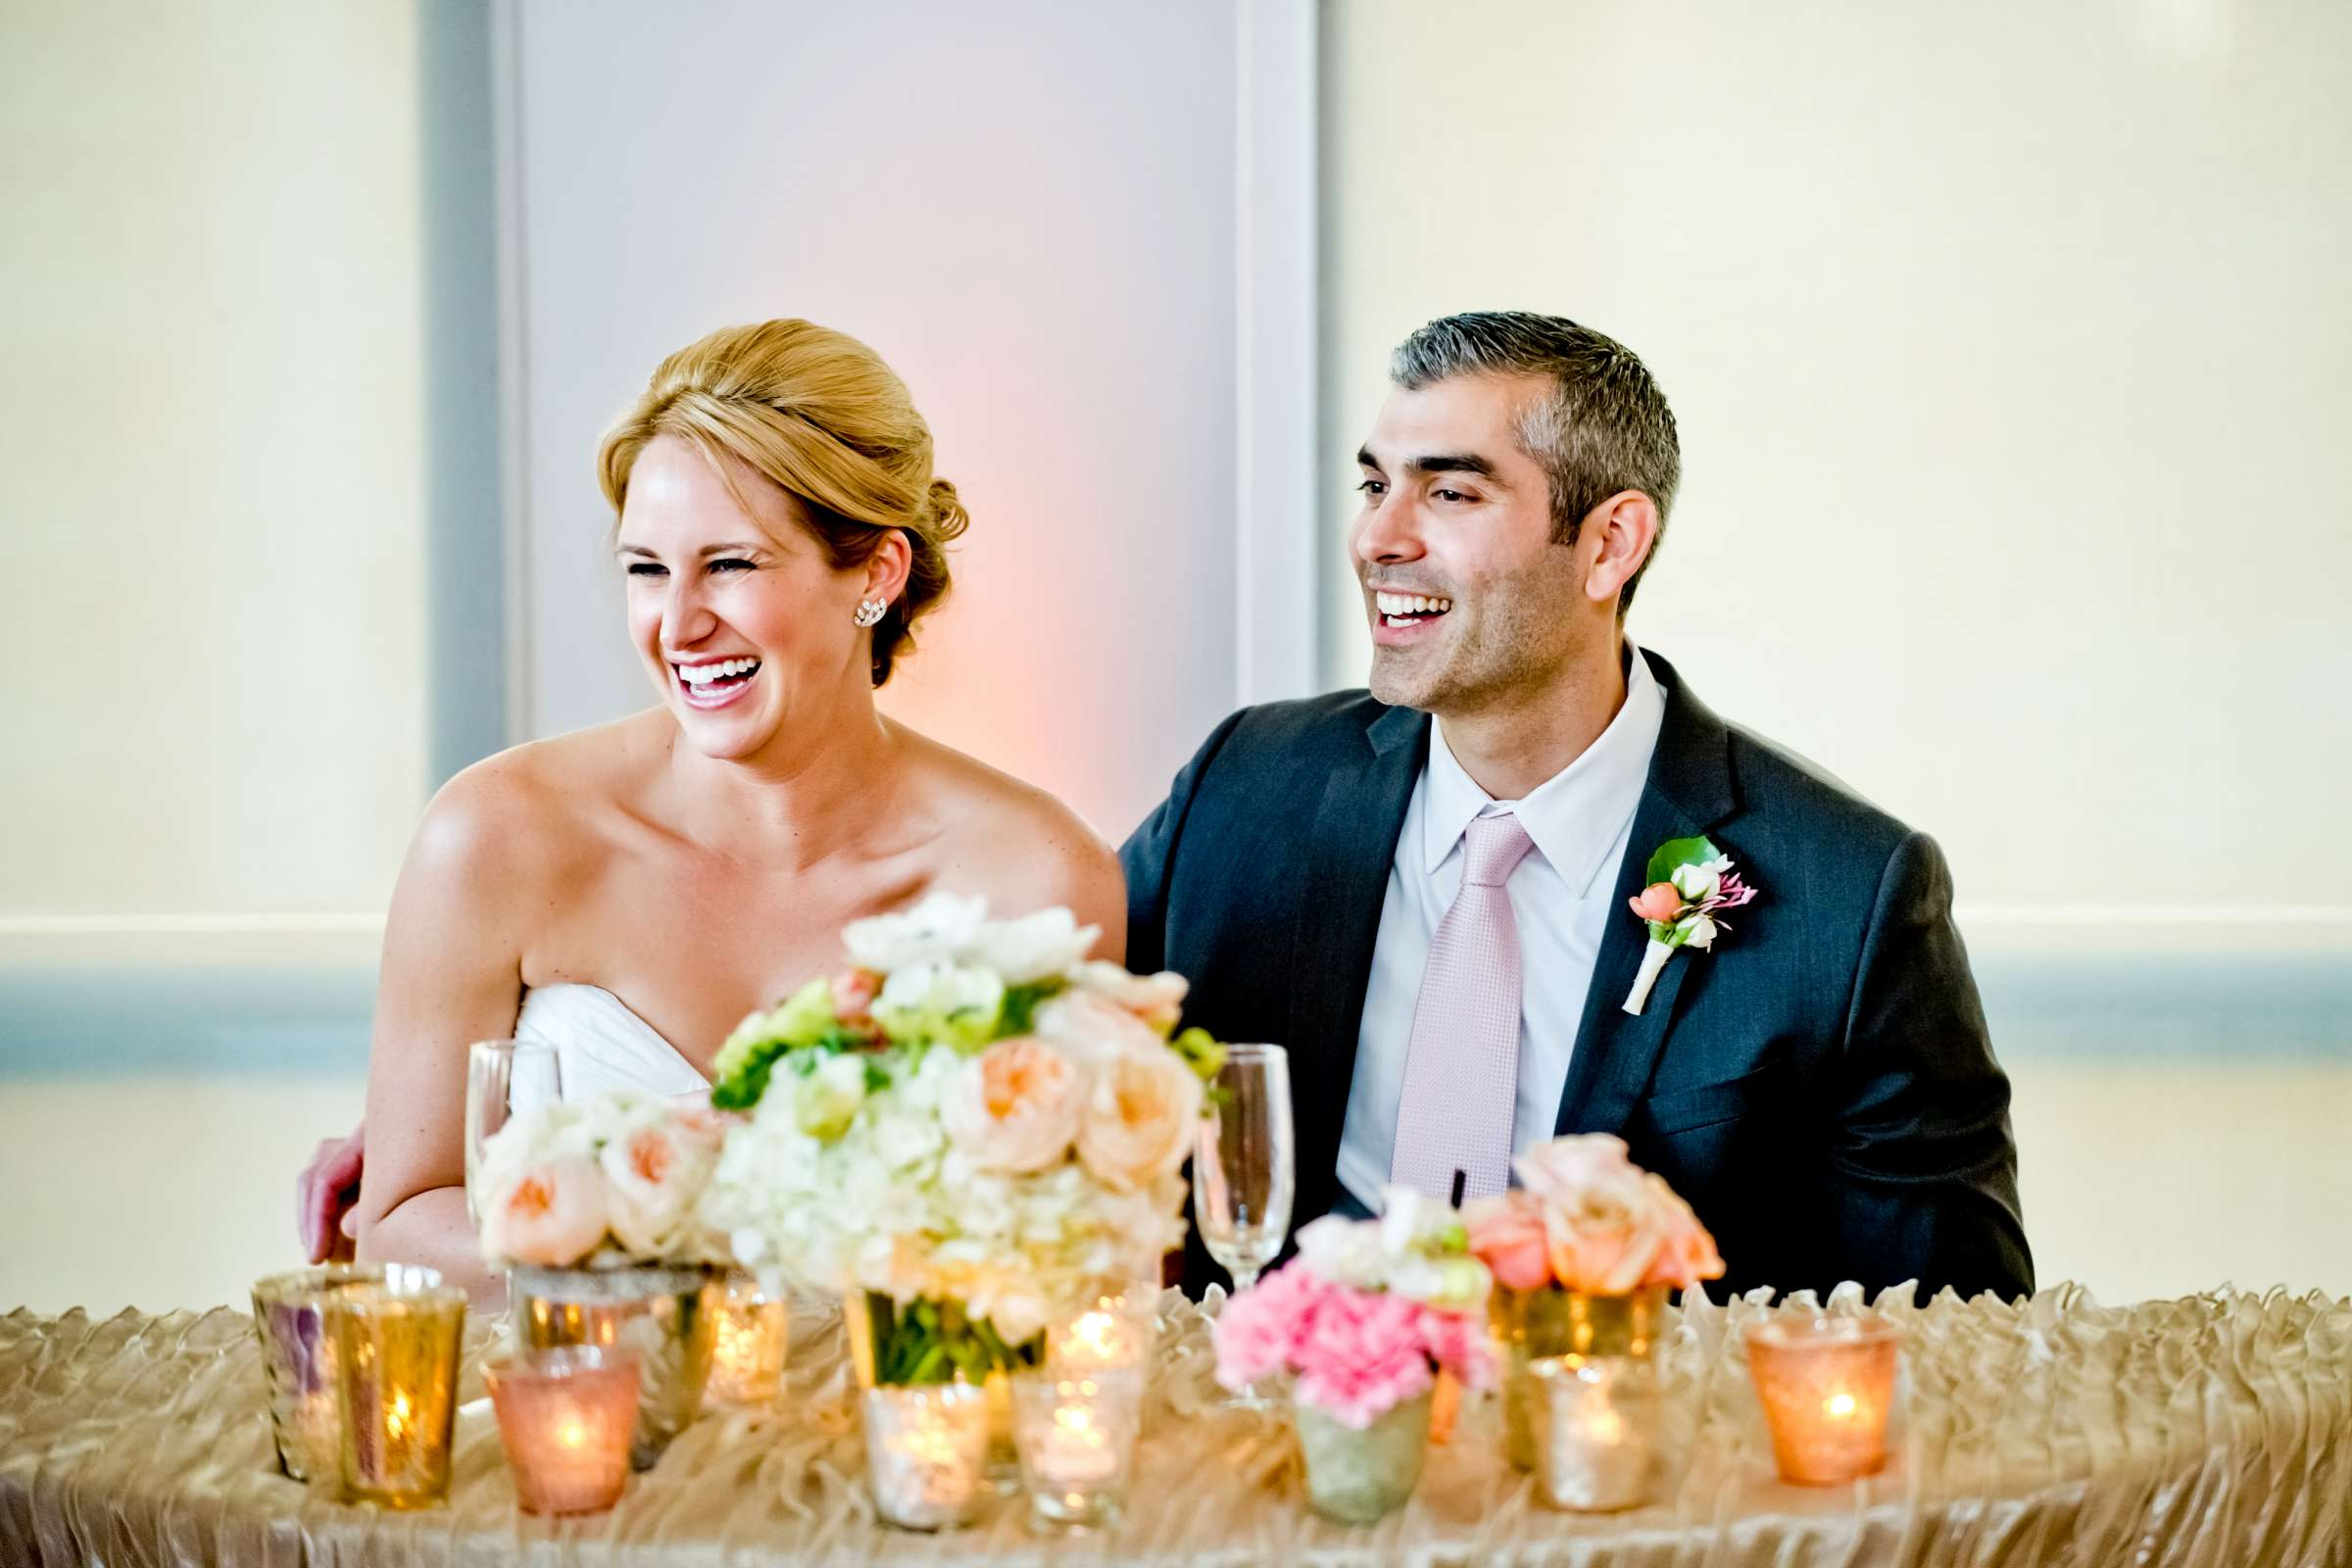 Reception at Ultimate Skybox Wedding, Chelsea and Frank Wedding Photo #55 by True Photography